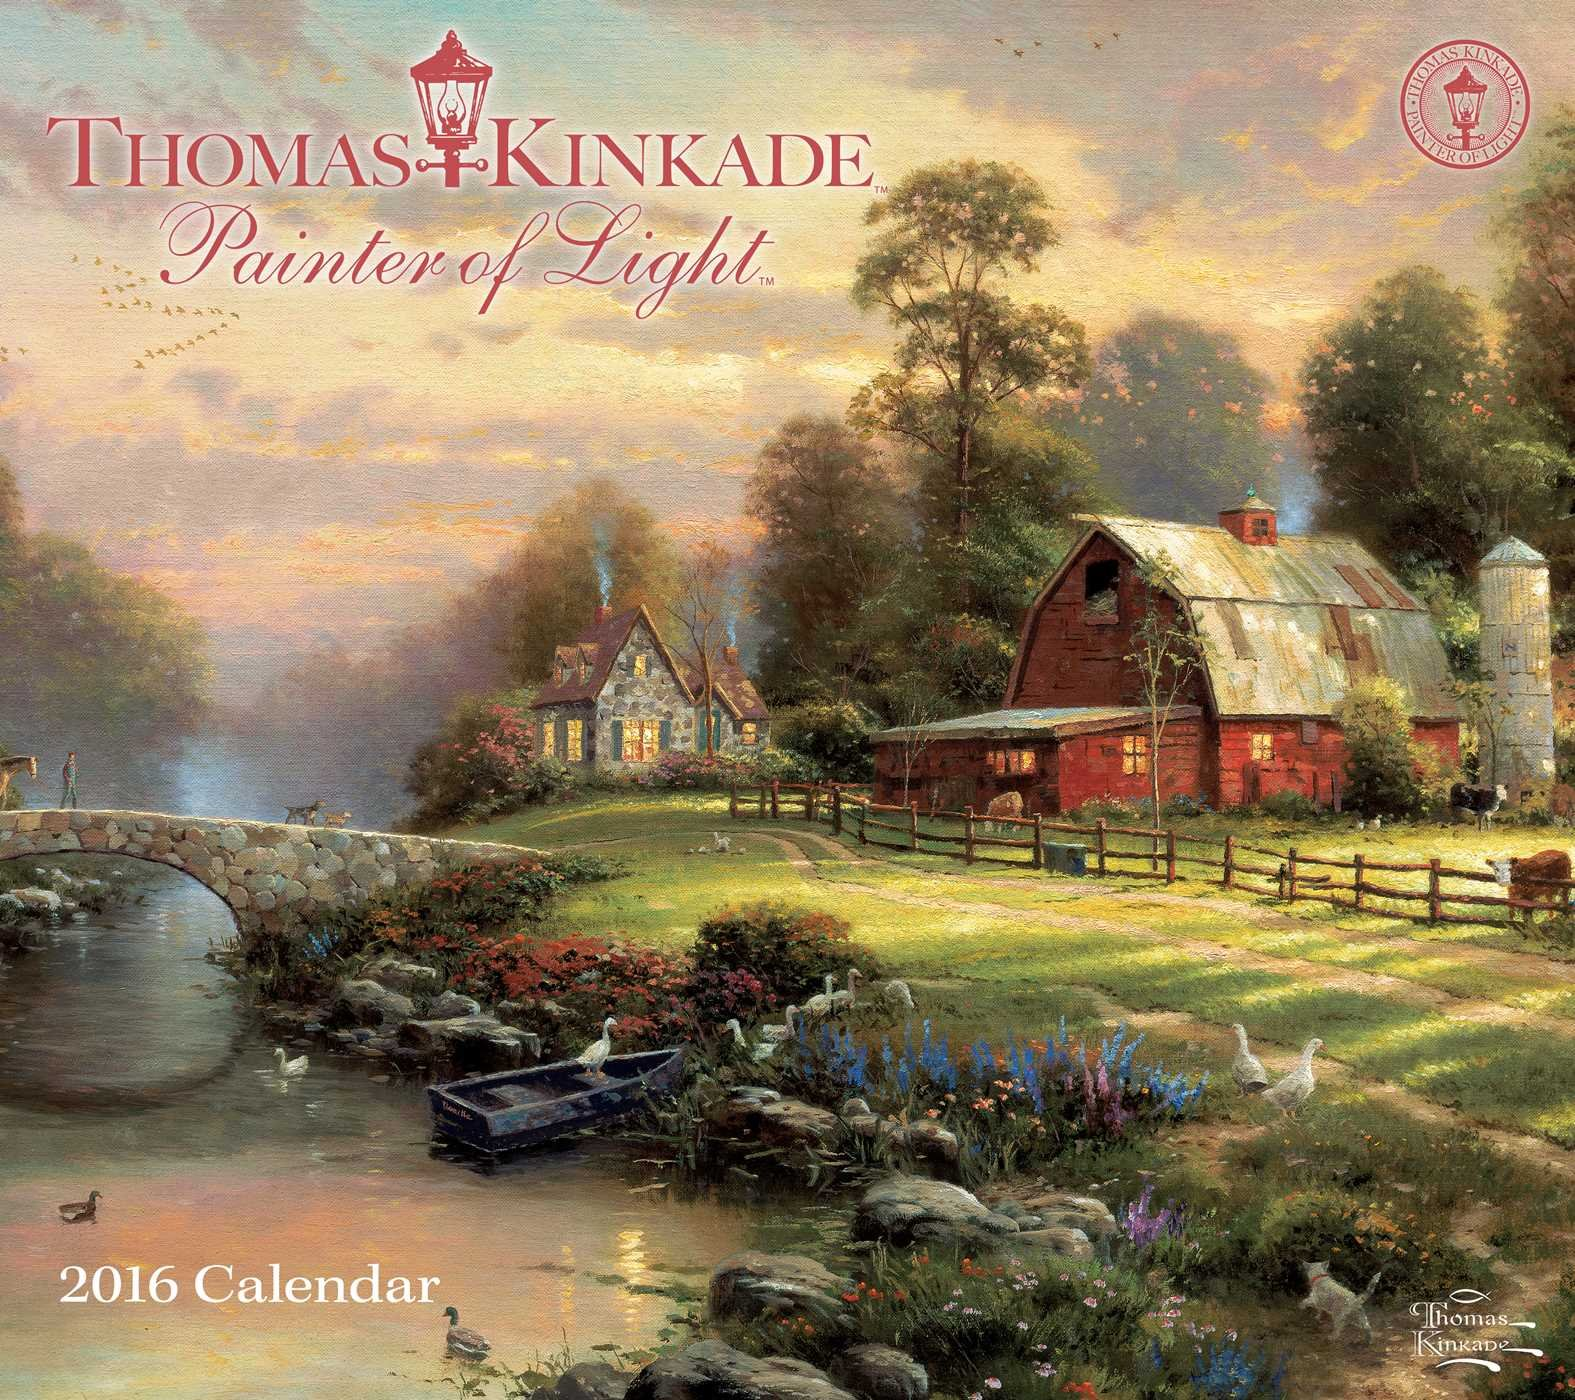 Thomas Kinkade Painter Of Light 2016 Deluxe Wall Calendar: Thomas Kinkade:  0050837343337: Amazon.com: Books